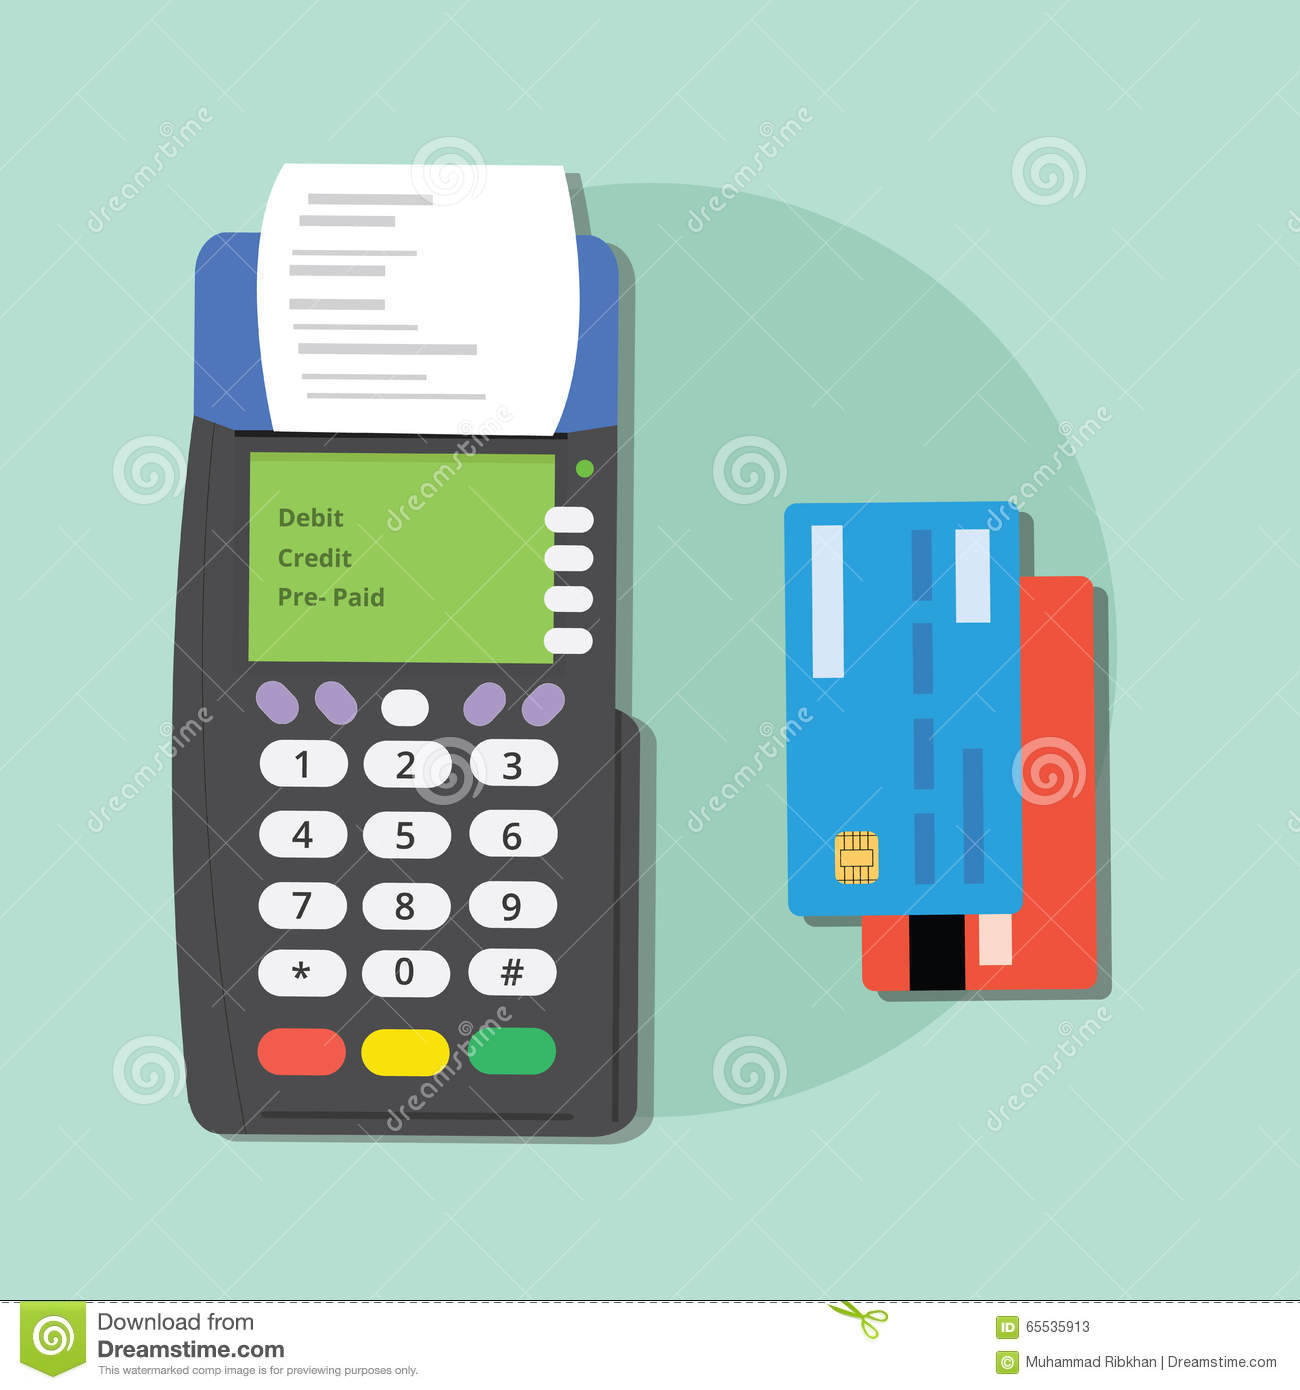 how to find the merchant id on debit machine